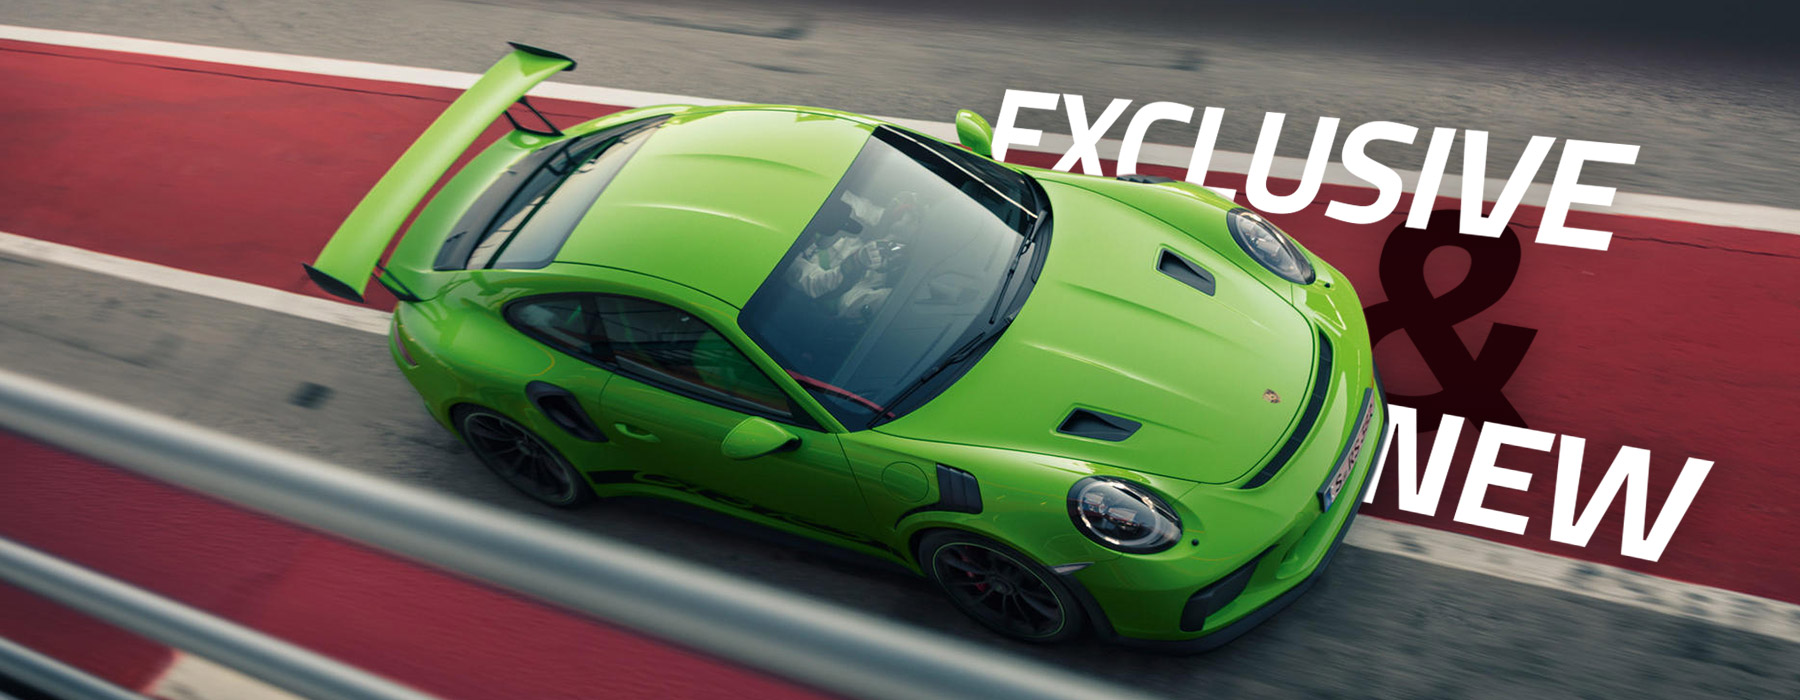 Drive A Porsche 911 Gt3 Rs On A Racetrack At Exotics Racing